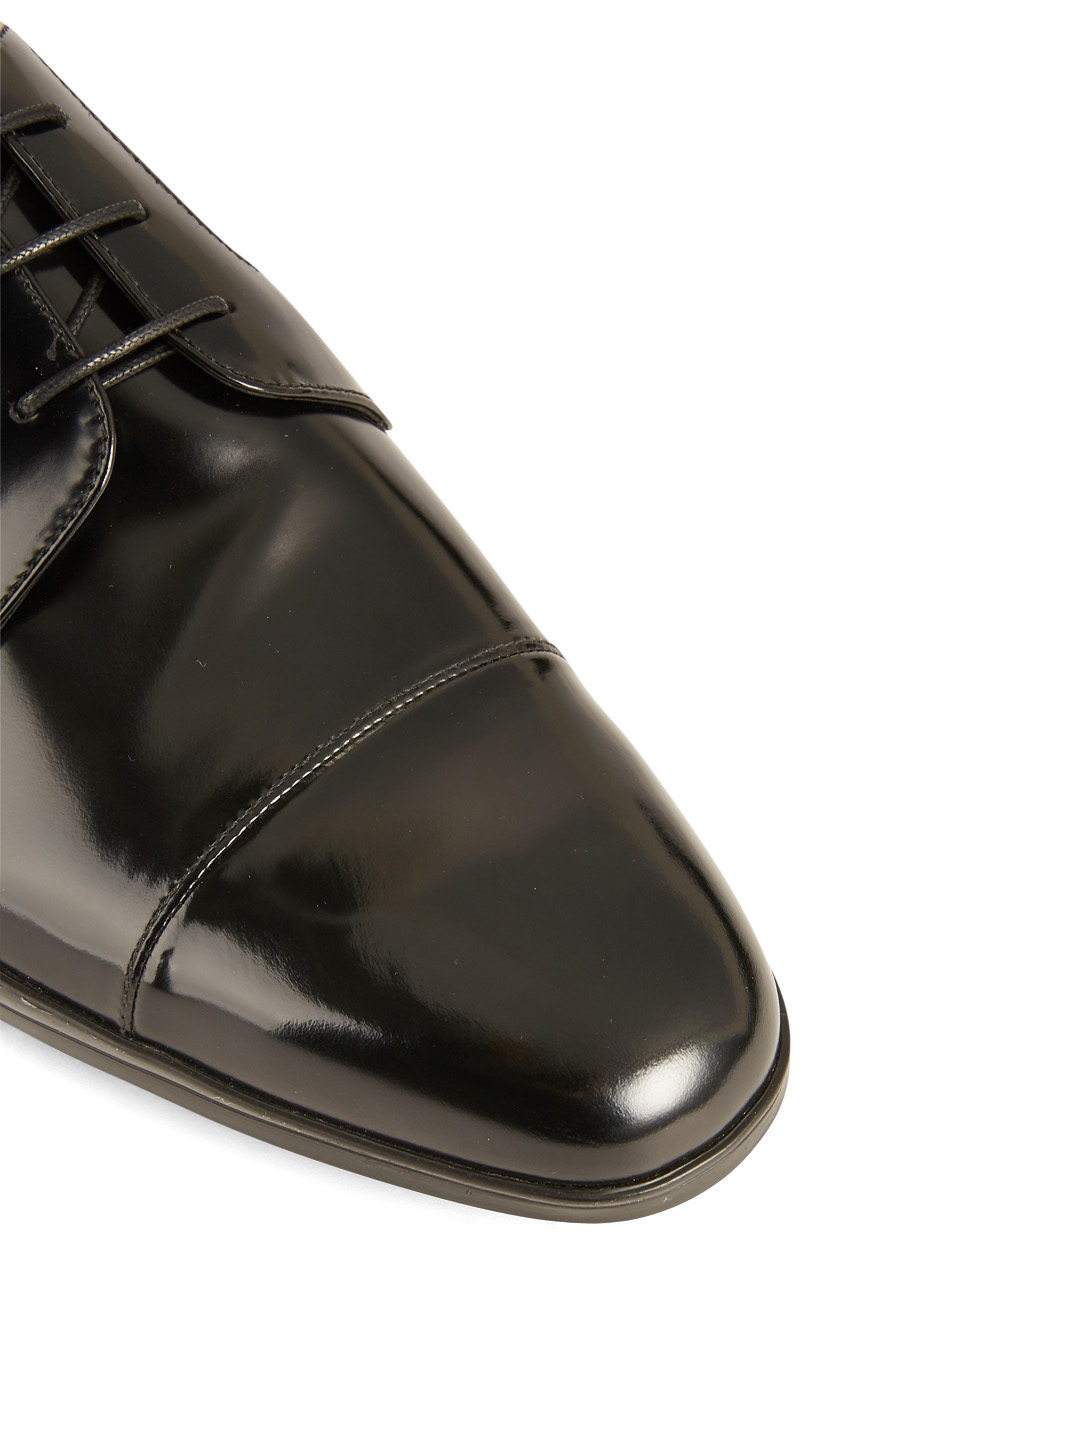 PRADA Brushed Leather Derby Shoes Designers Black